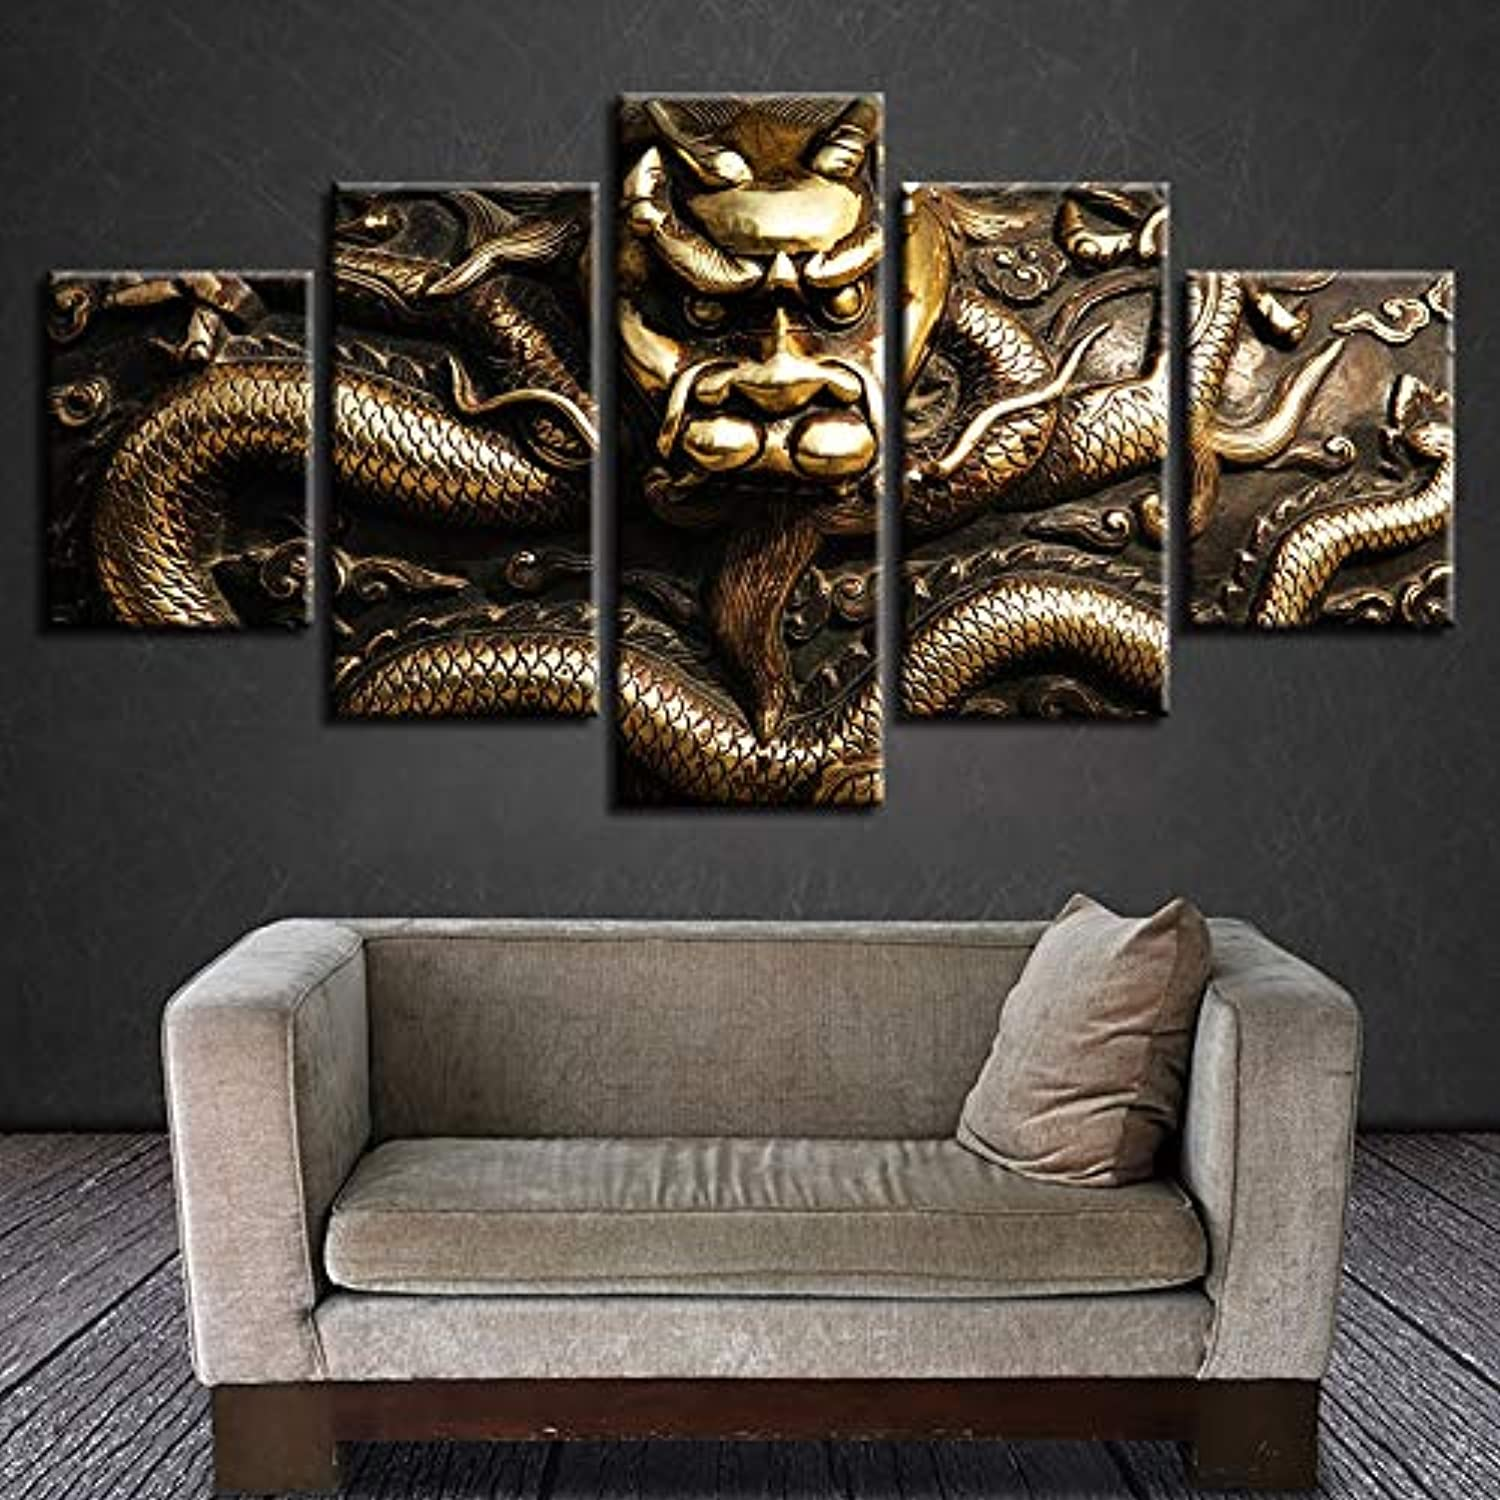 HD Printed Paintings Modular Posters Home Decoration 5 Panel Dragon Legend Abstract Tableau Art Pictures Canvas